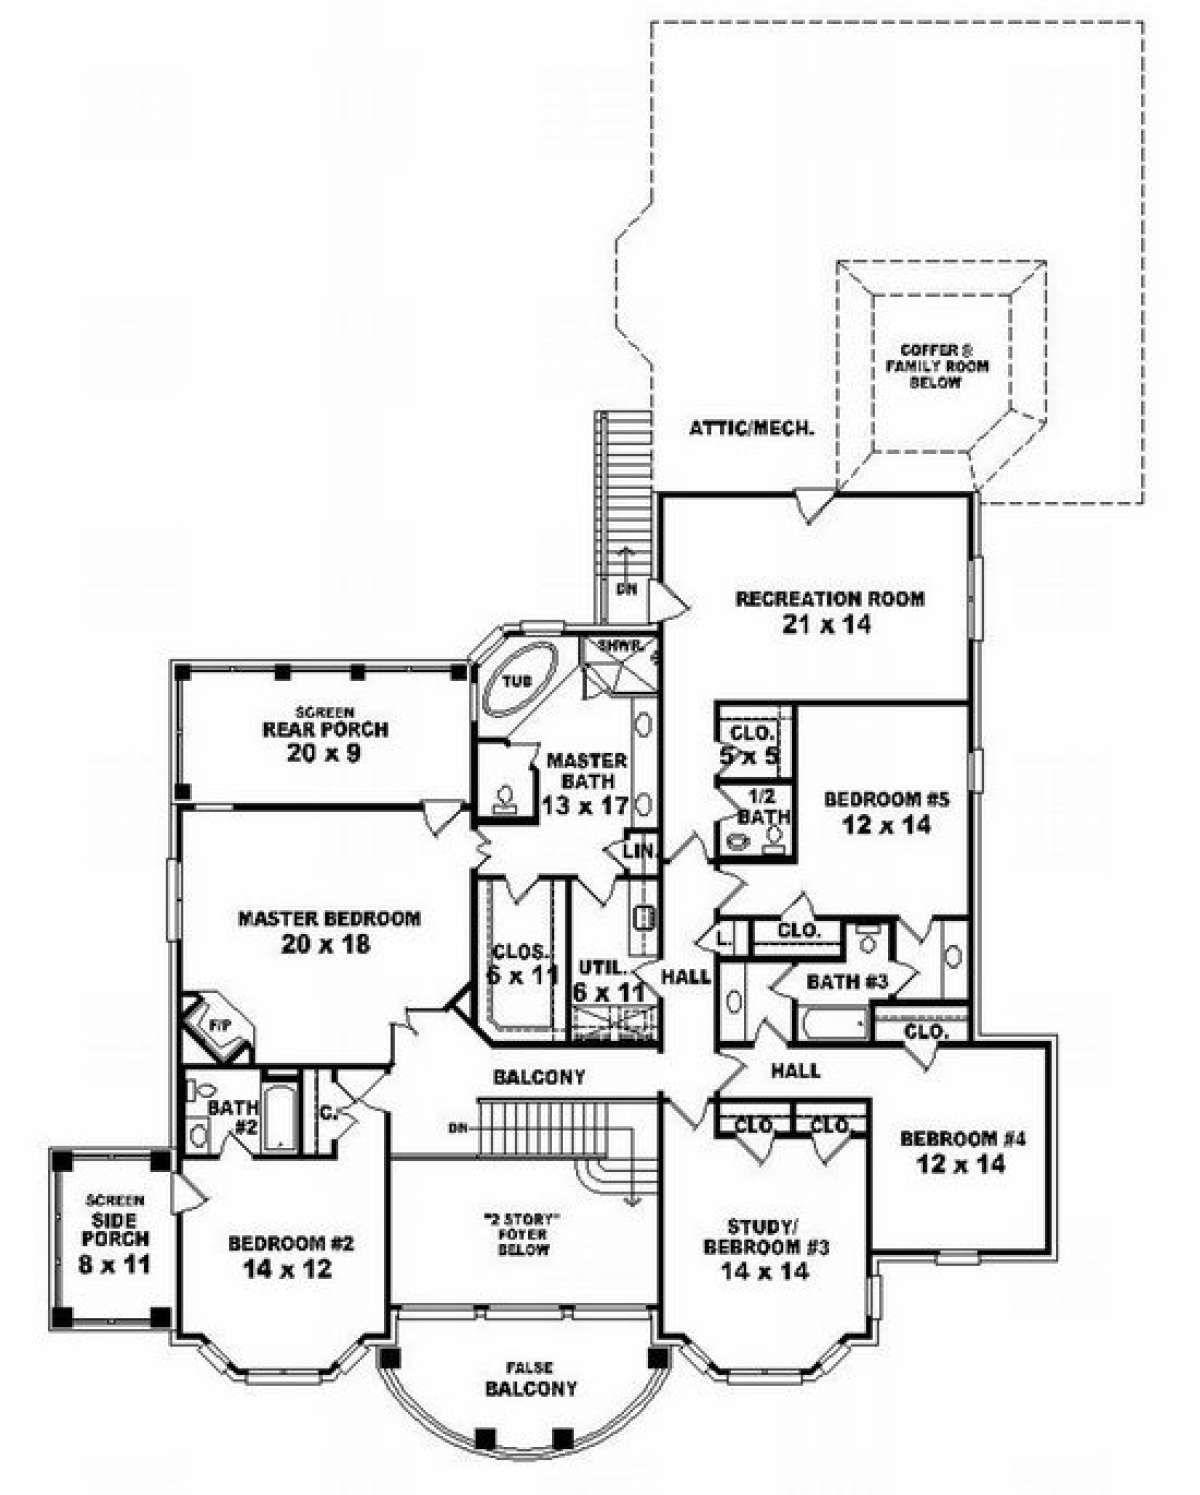 House Plan 053 02267 Luxury Plan 5 625 Square Feet 7 Bedrooms 4 Bathrooms In 2020 Luxury Plan House Plans Garage House Plans